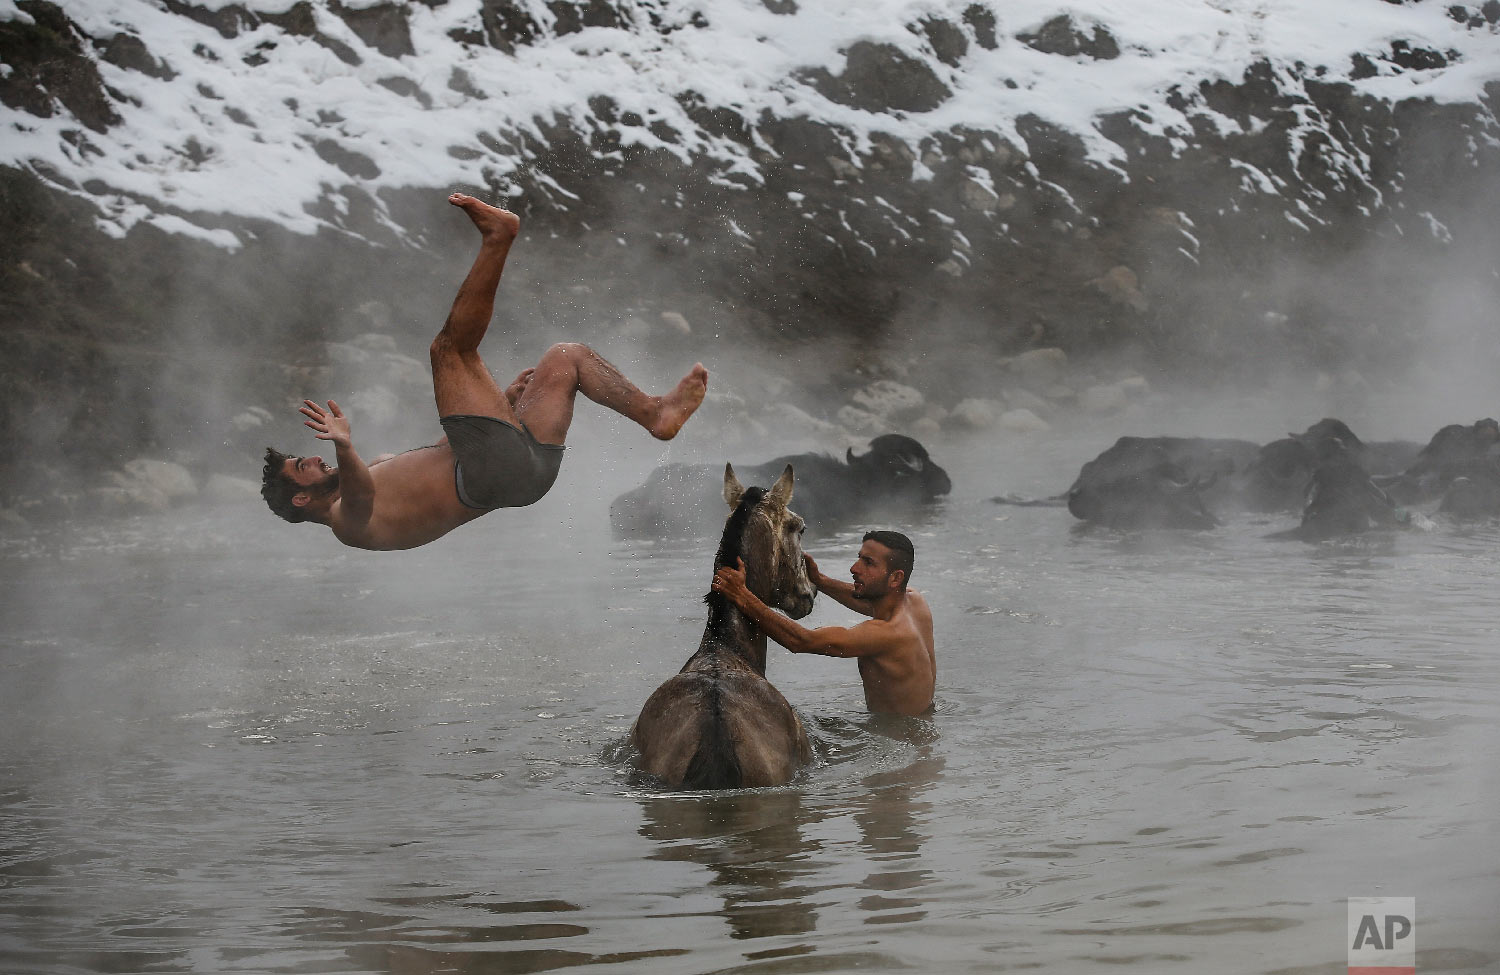 Muhammed Toren, 18, left, and Berkan Toren, 20, enjoy a hot spring along with their water buffaloes near the village of Budakli, in the mountainous Bitlis province of eastern Turkey, Thursday, Jan. 24, 2019. (AP Photo/Emrah Gurel)